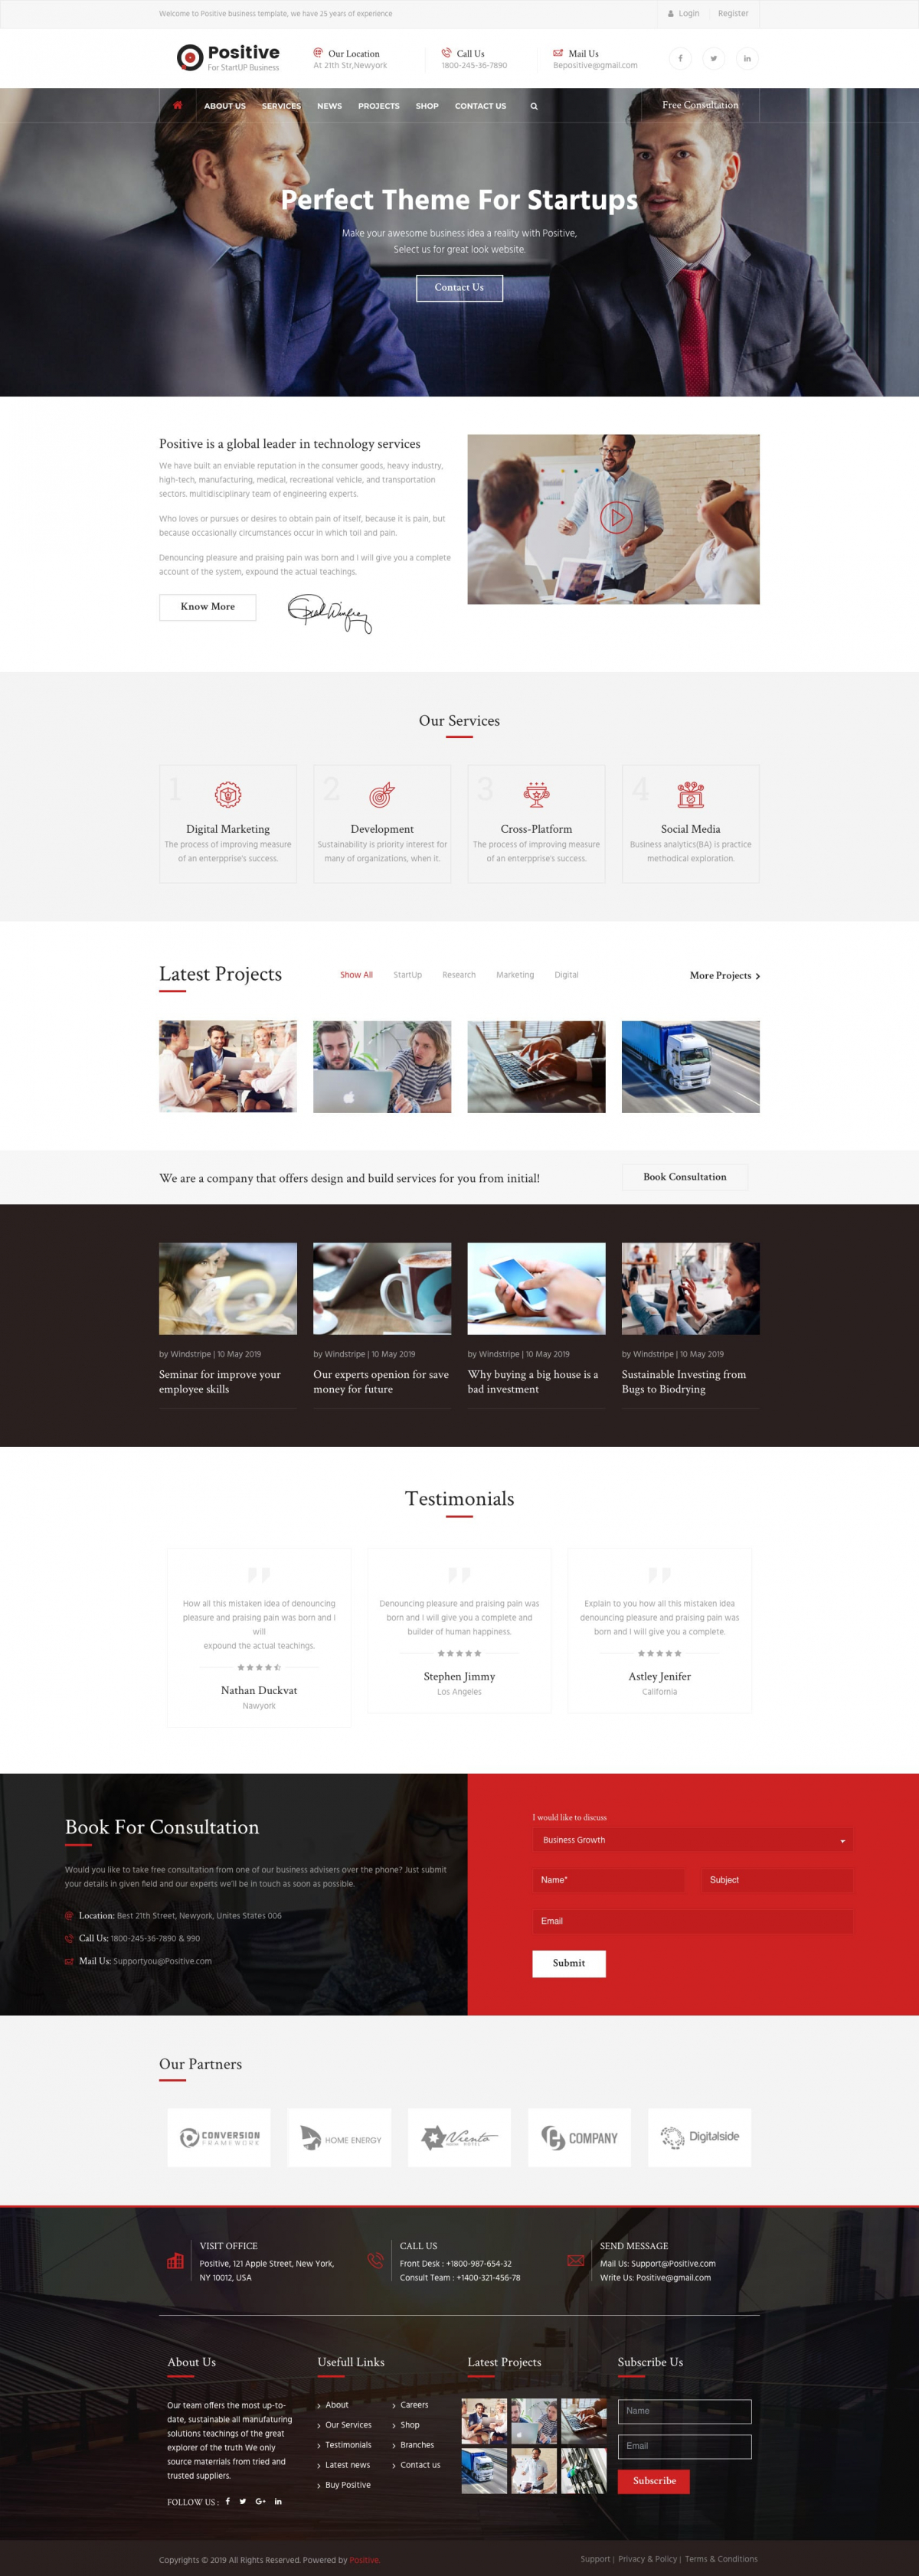 Positive - Startup Business & Consulting Services Joomla Template